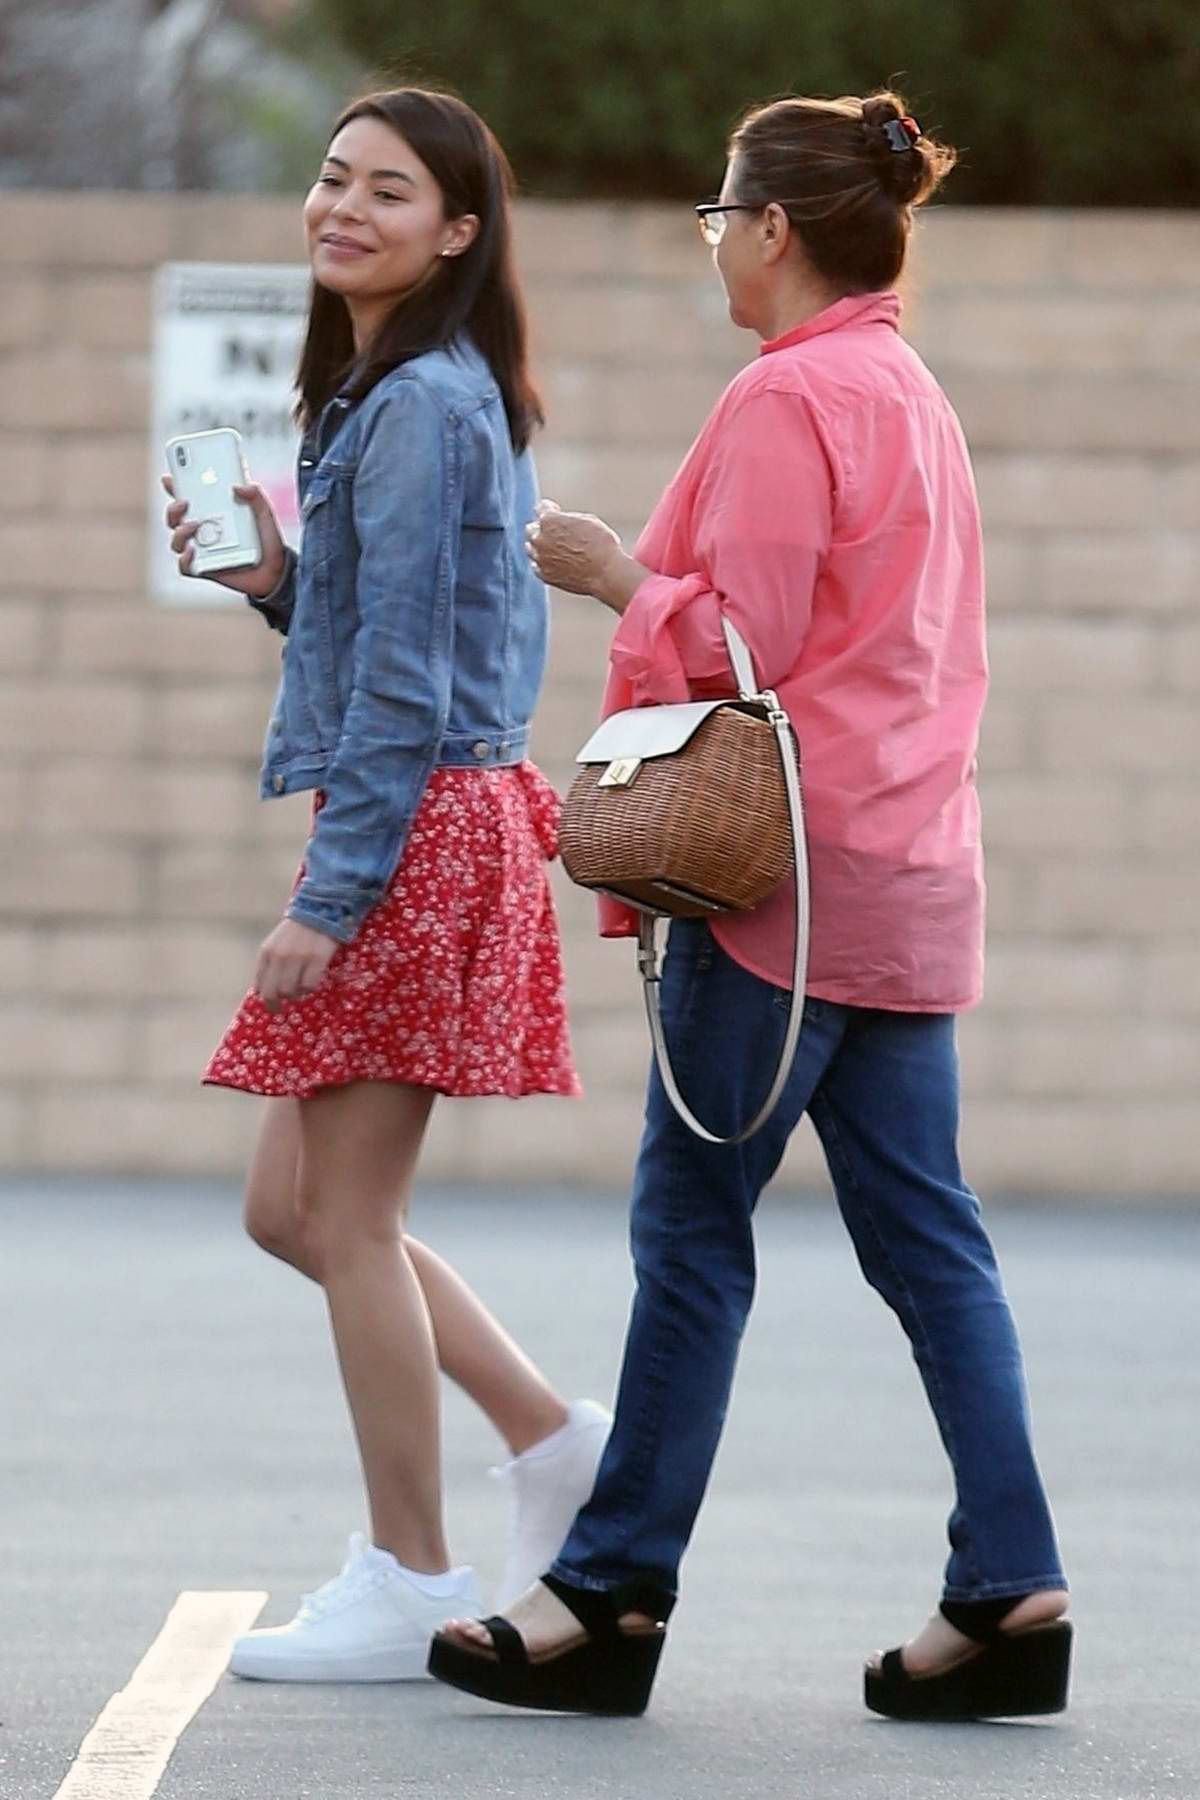 Miranda Cosgrove keeps it cute in florals as she grabs sushi with her mom in Beverly Hills, Los Angeles